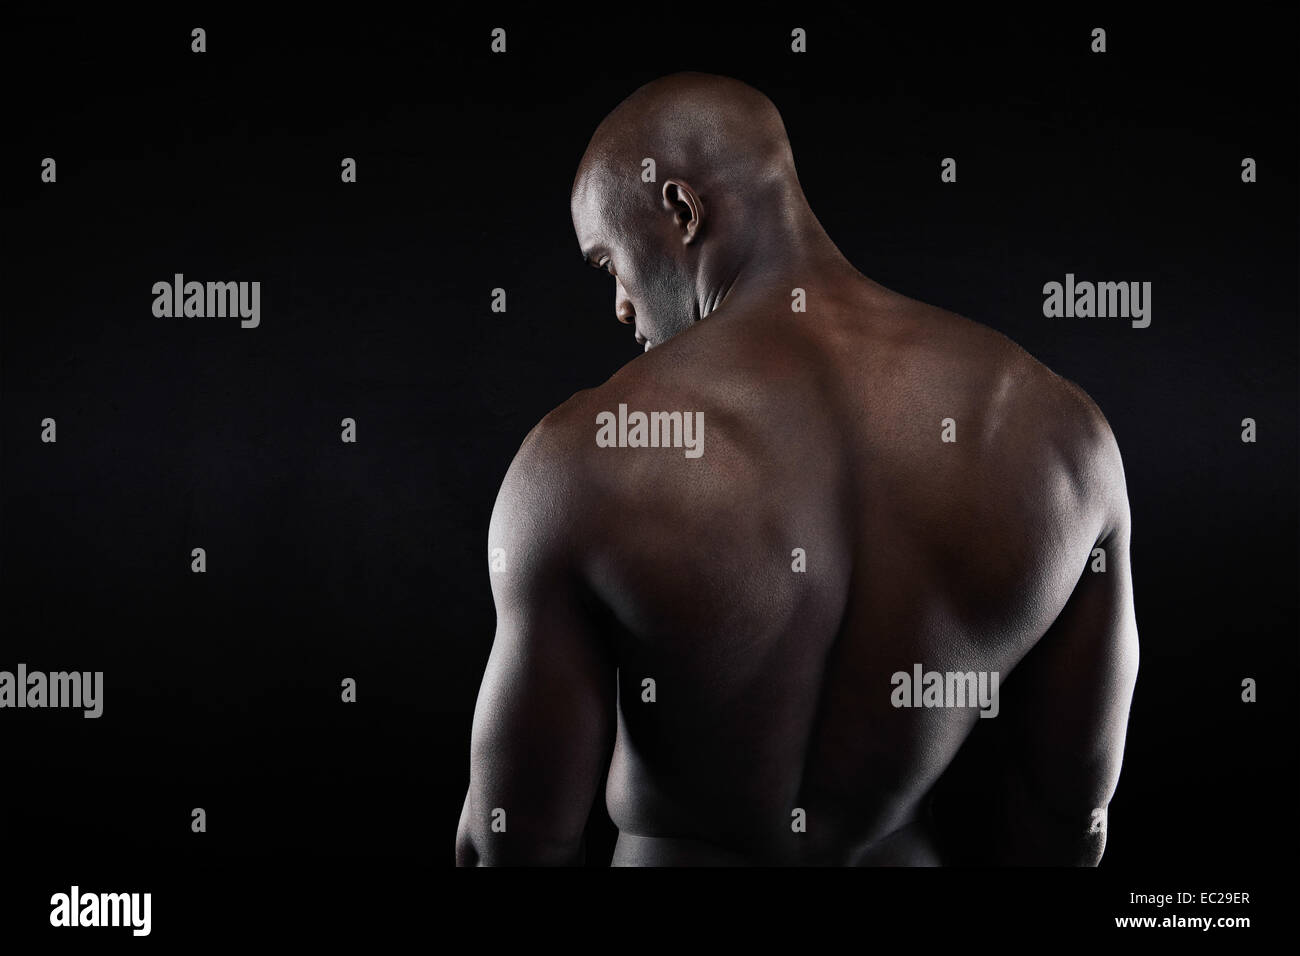 African muscular bodybuilder's back on black background. Shirtless fitness model with copyspace. - Stock Image